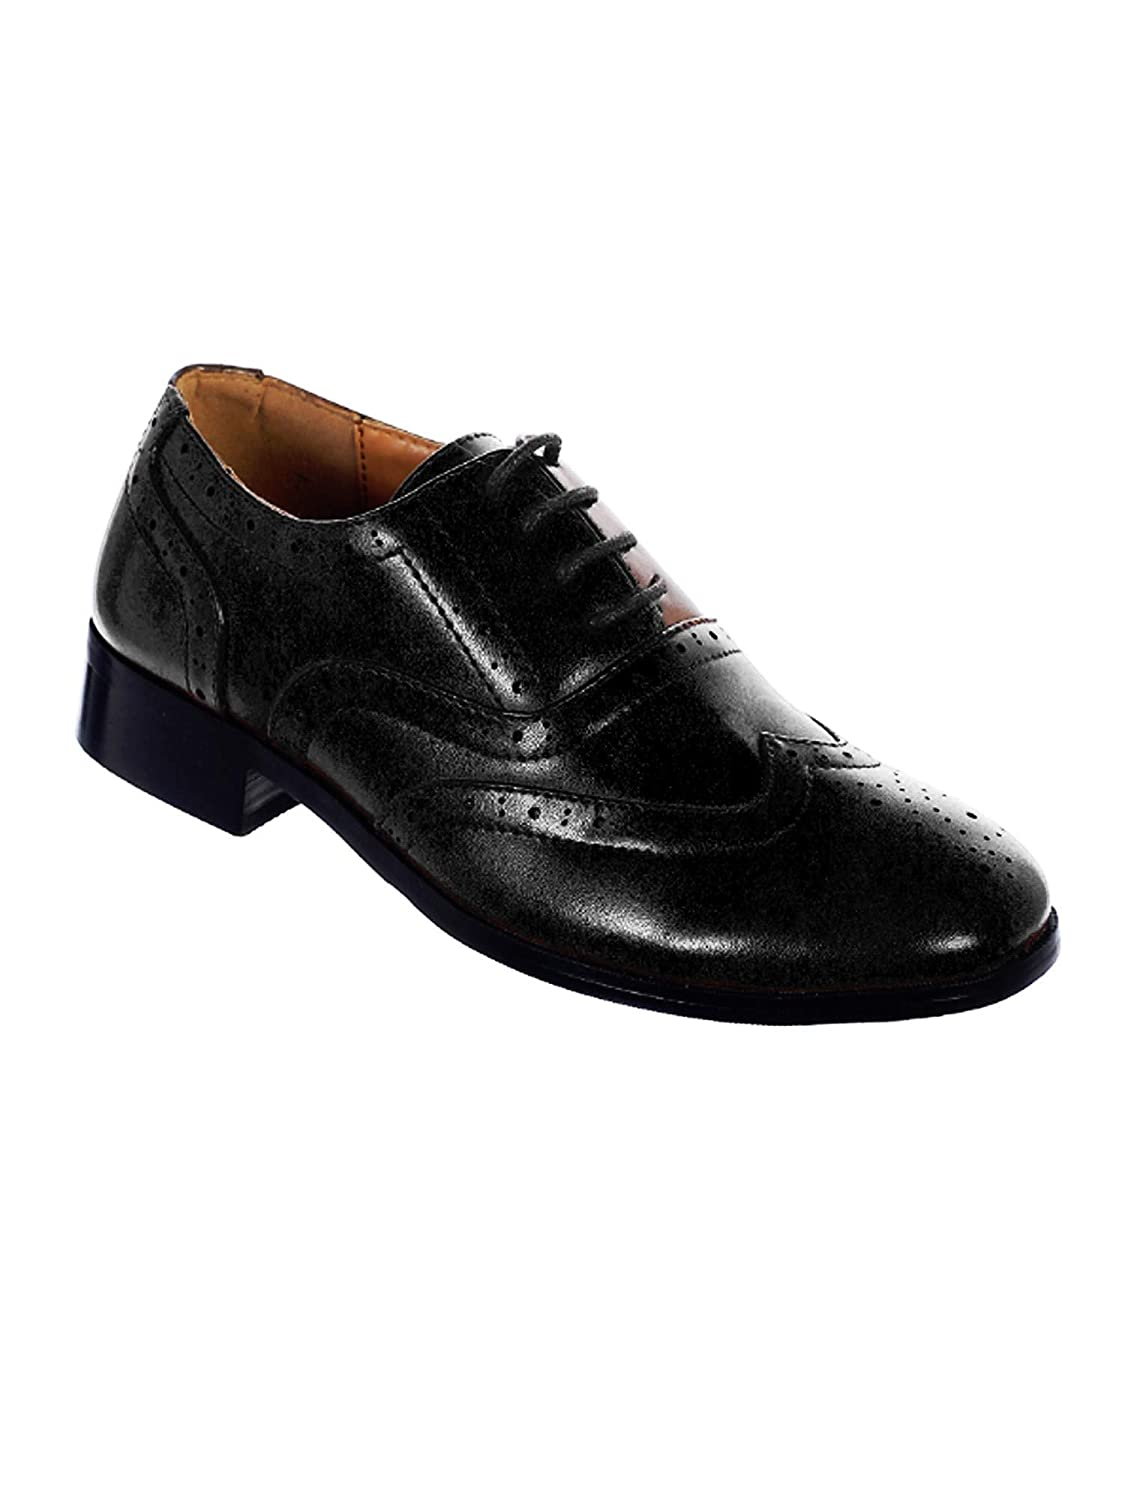 Tip Top Kids Boys Black Wingtip Oxford Shoes 5-10 Toddler